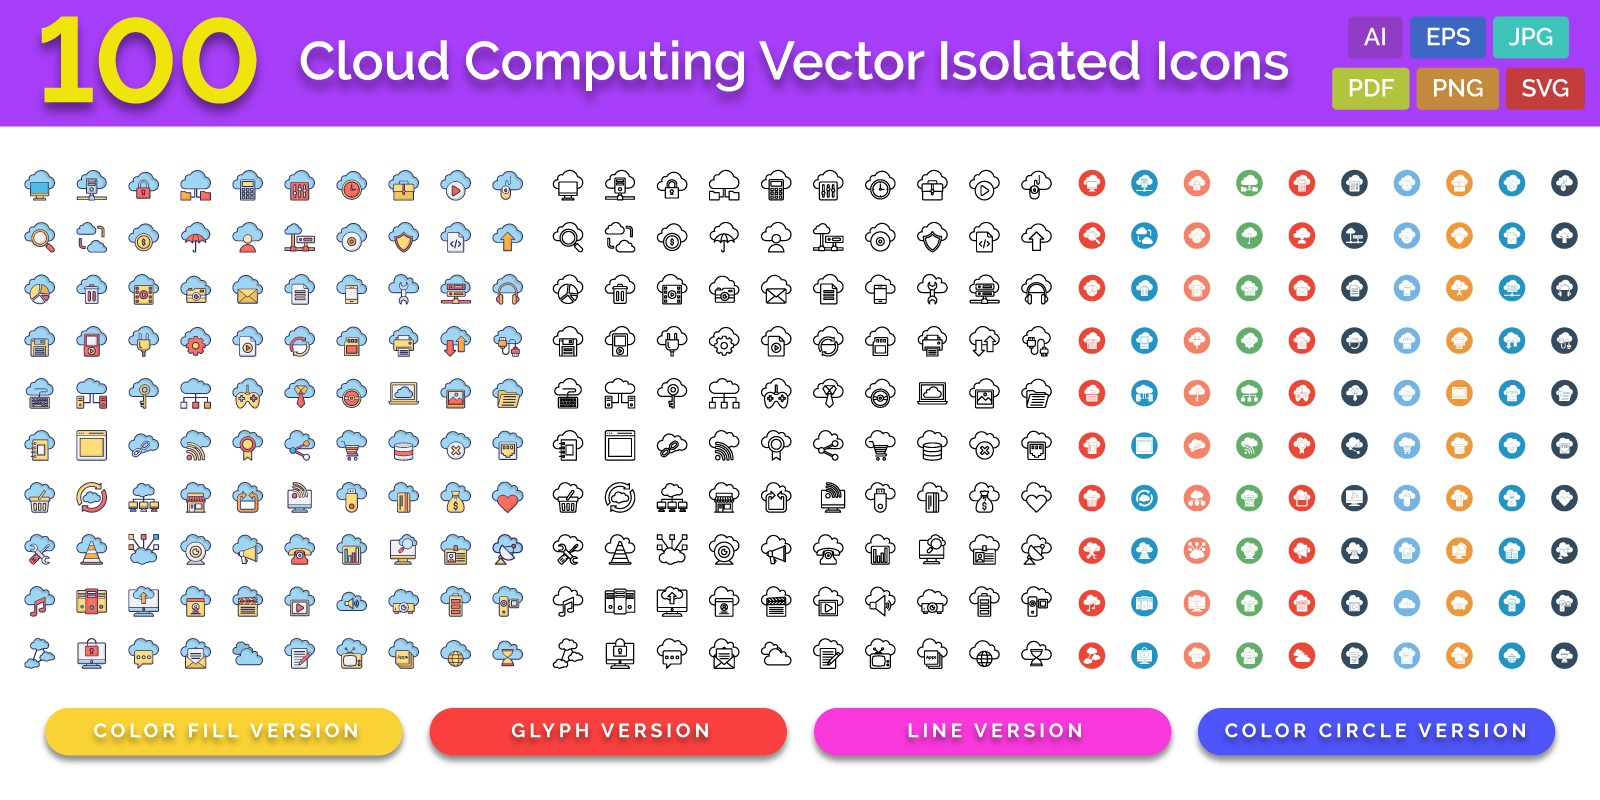 100 Cloud Computing Vector Isolated Icons Pack